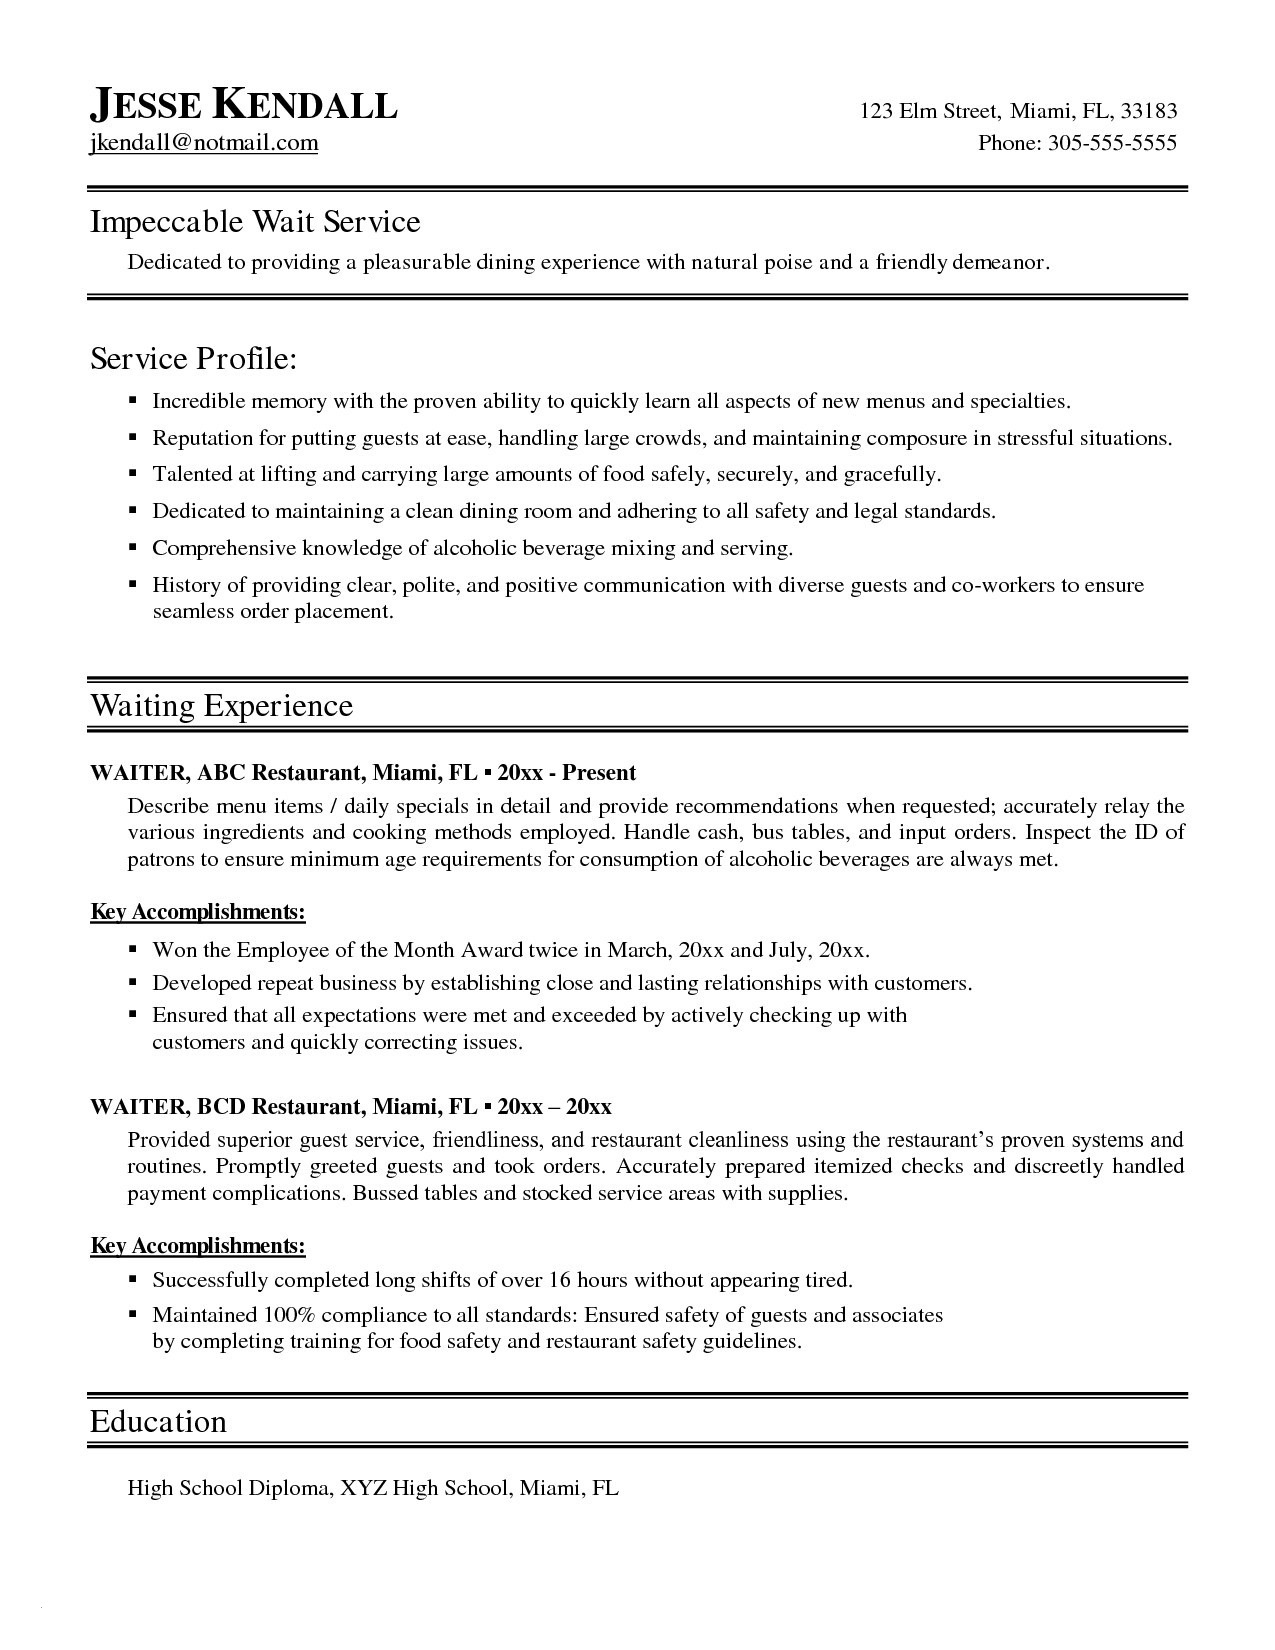 Babysitter Resume Description - Babysitting Job Resume Fresh Beautiful Nanny Duties Resume Fresh